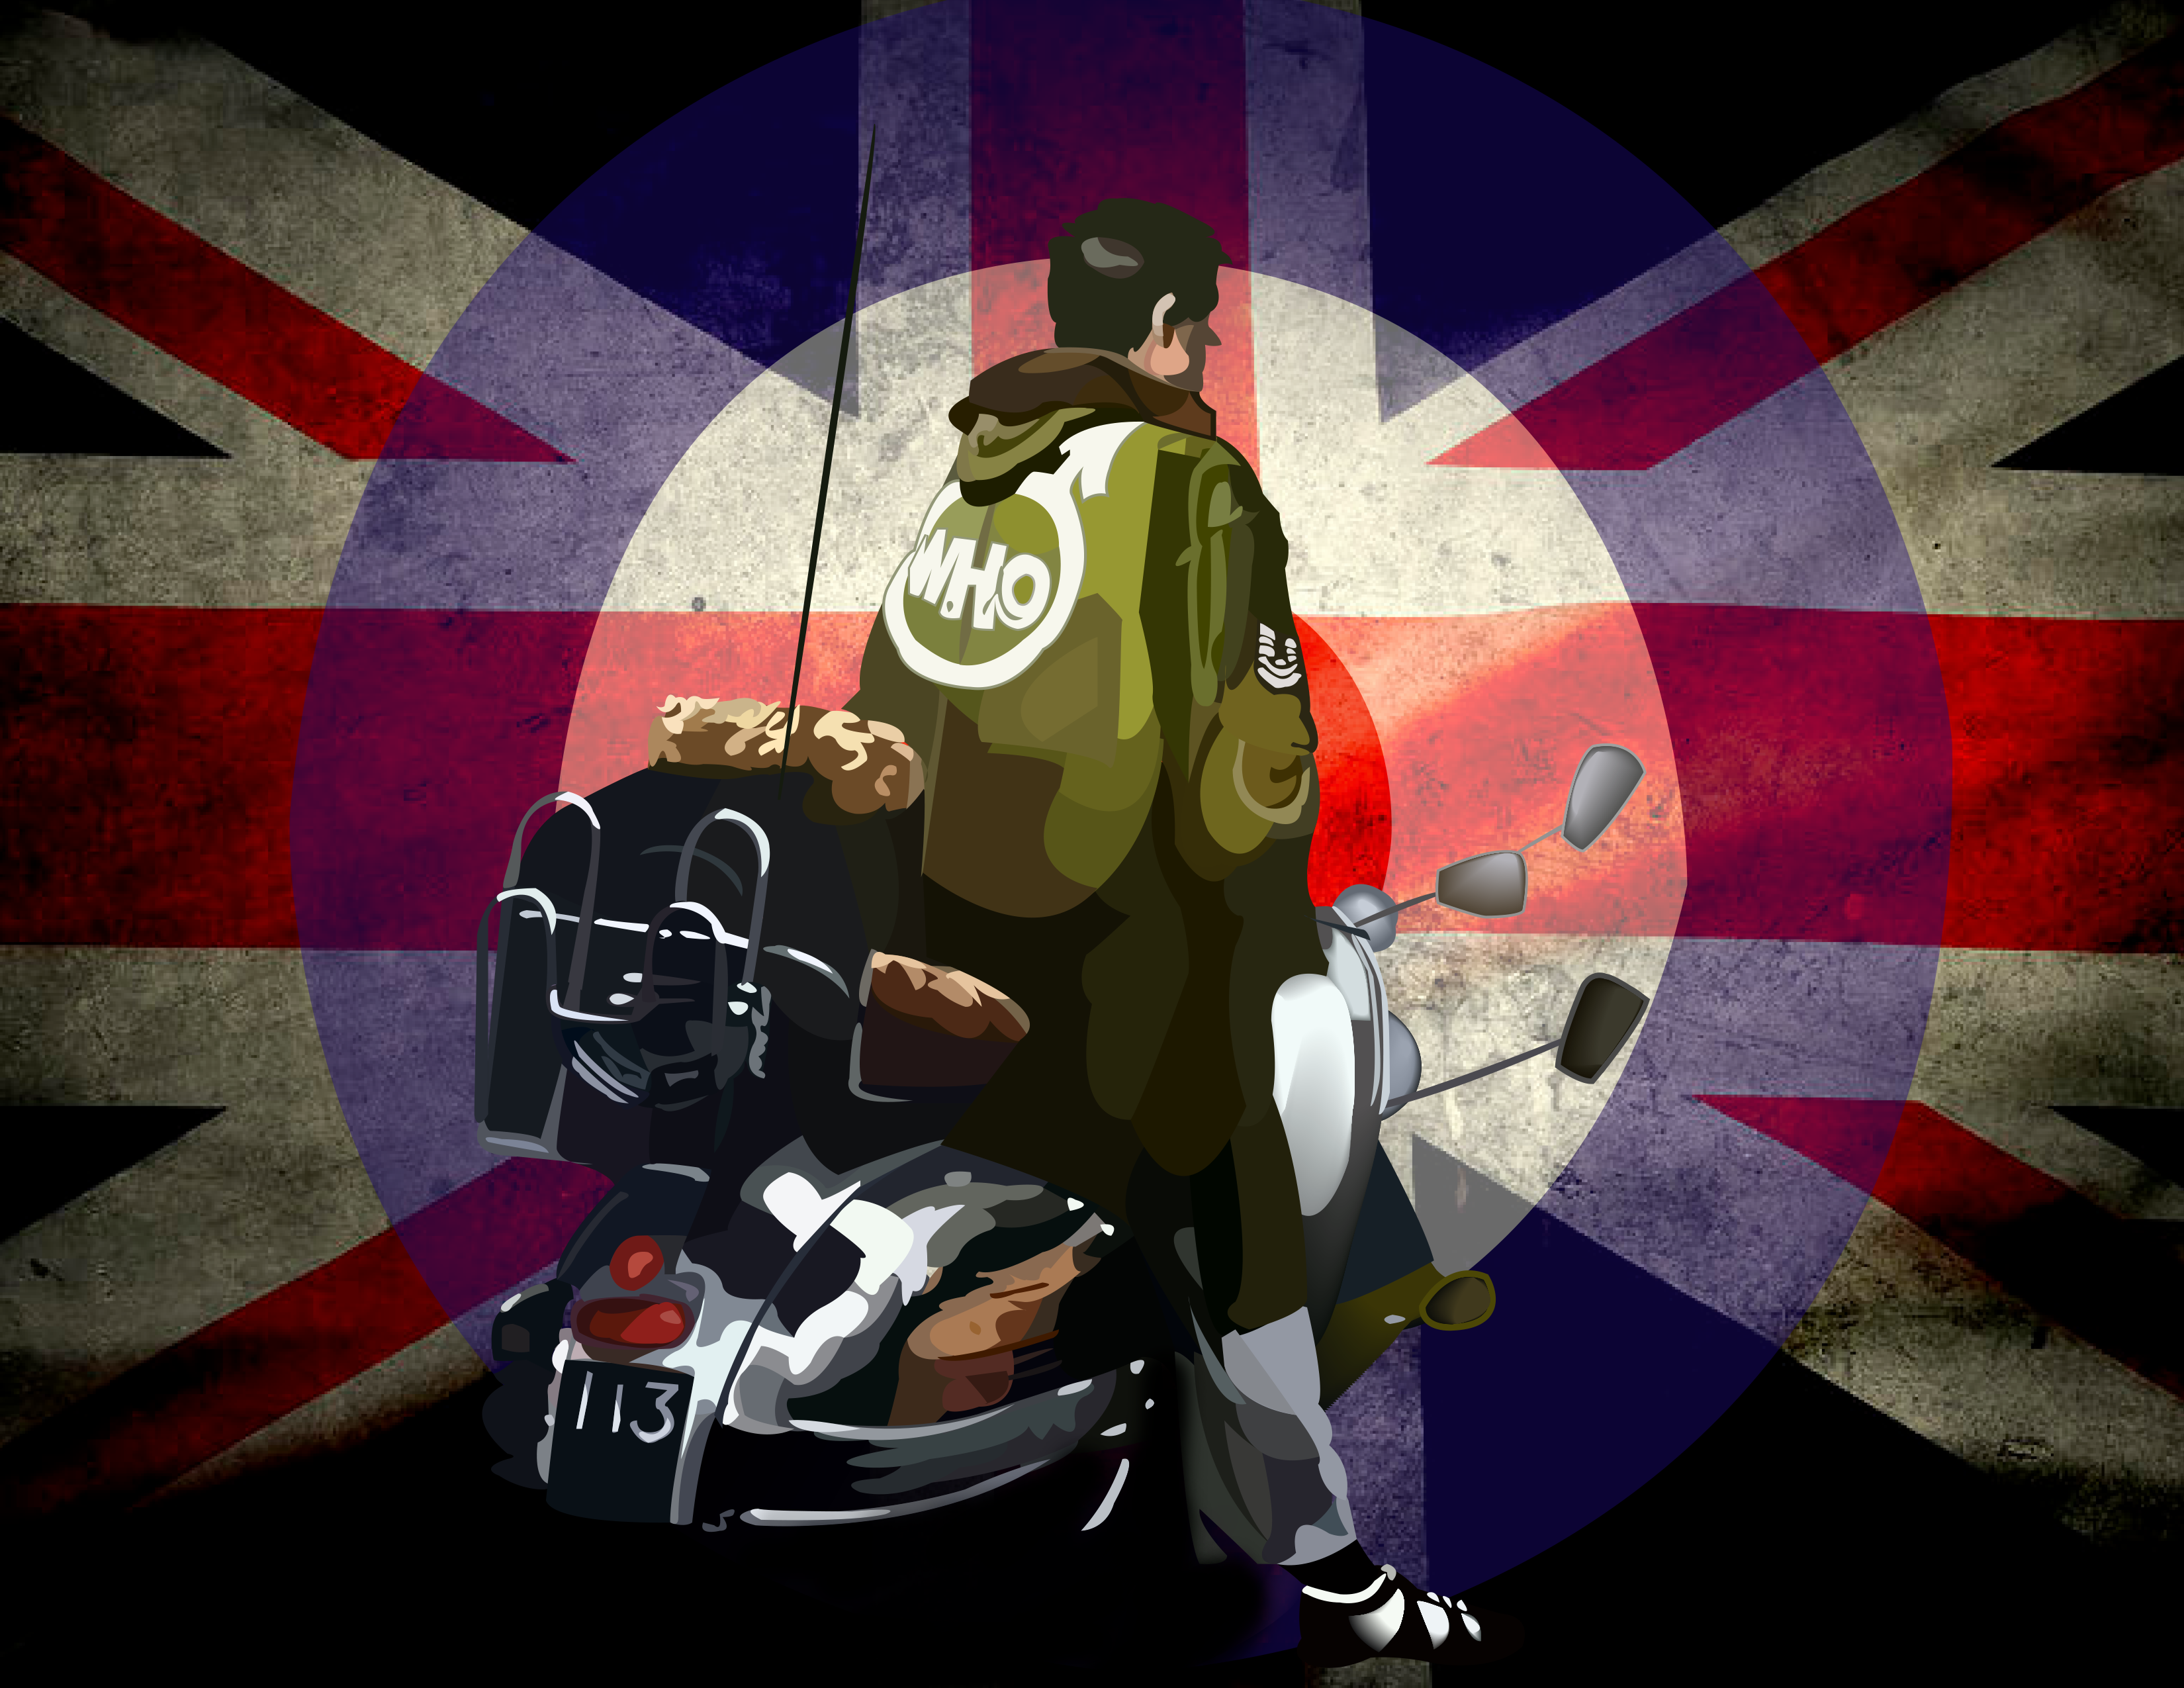 Quadrophenia Album art